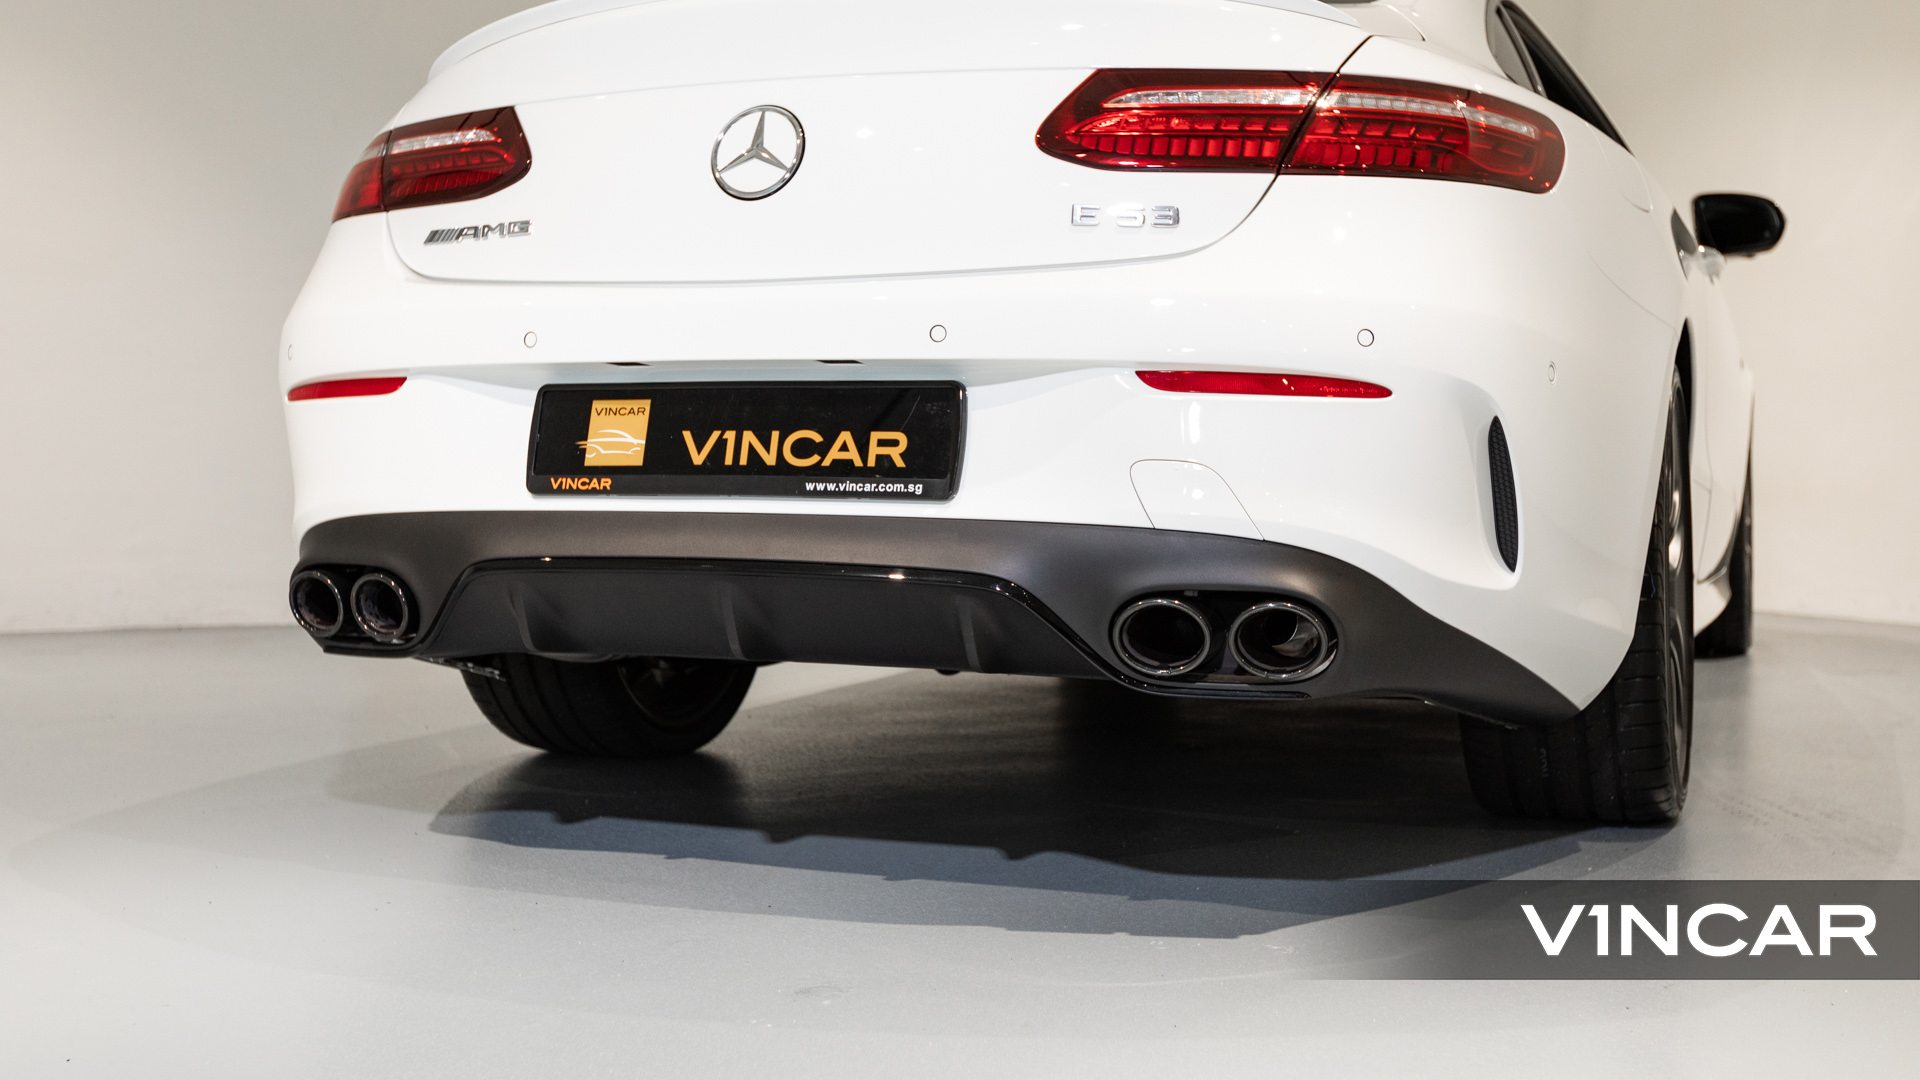 Mercedes-AMG E53 Coupe AMG Night Edition Premium Plus (FL2021) - Exhaust System